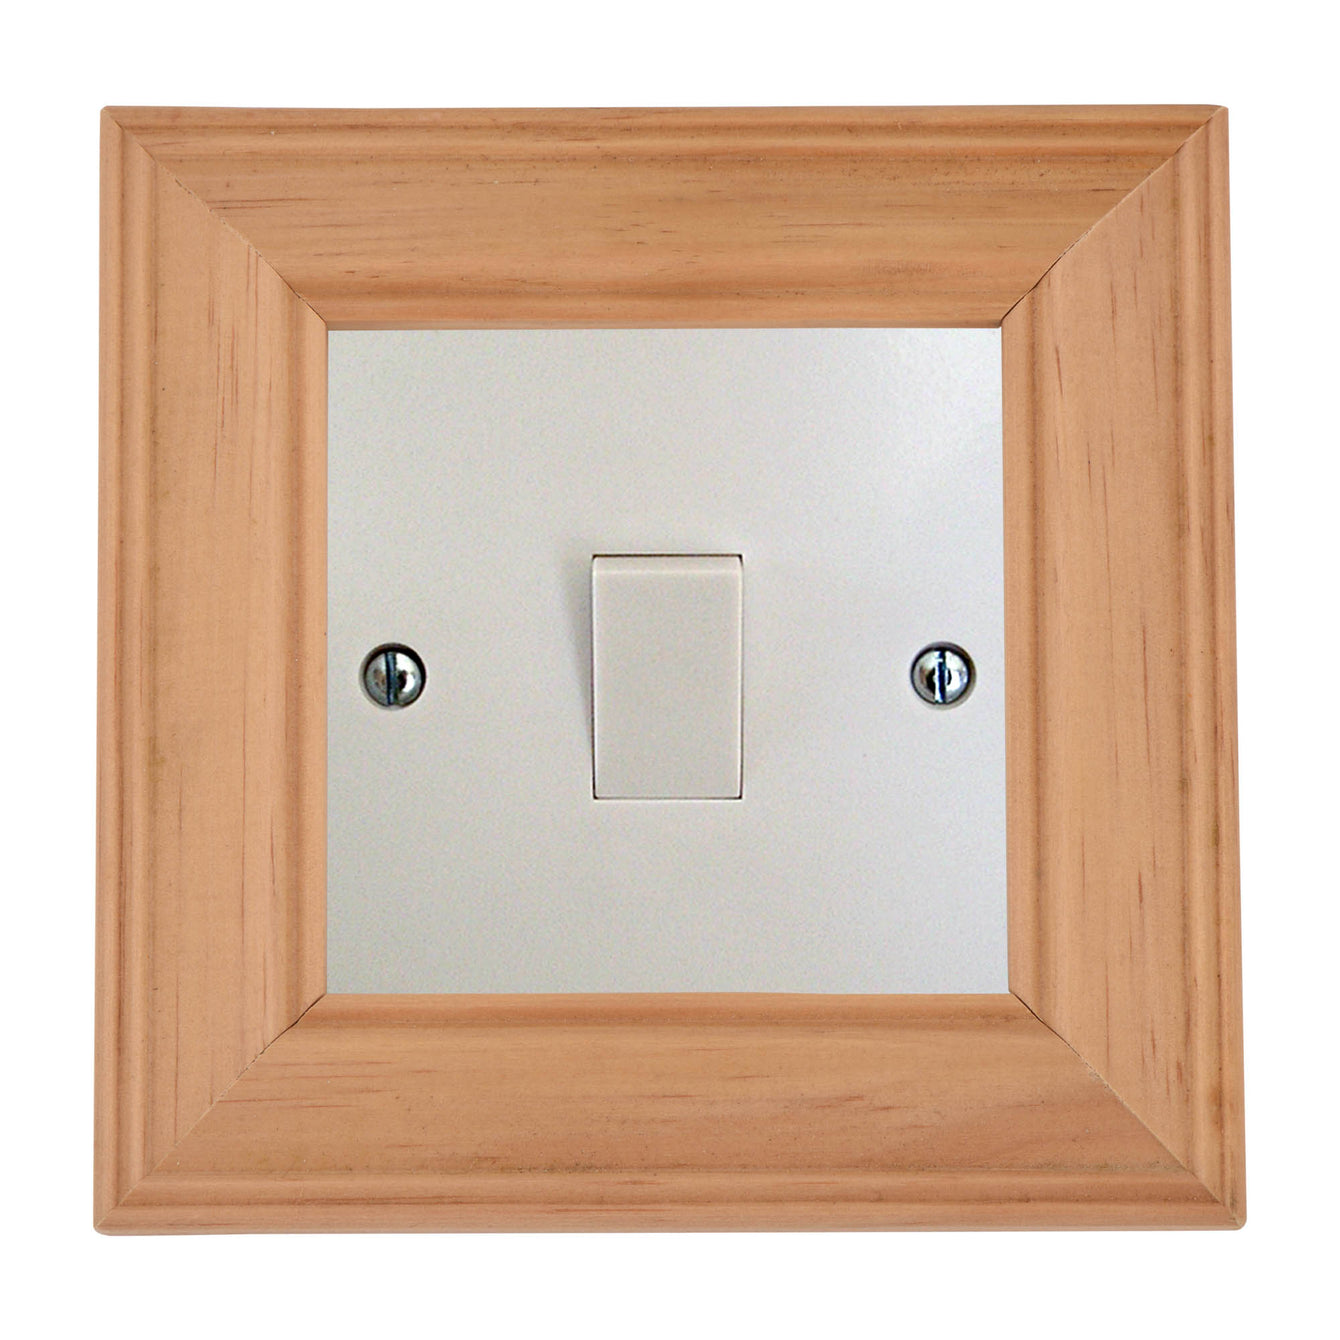 ElekTek Switch Surround Ovolo Frame Cover Finger Plate Pine Shades - Buy It Better